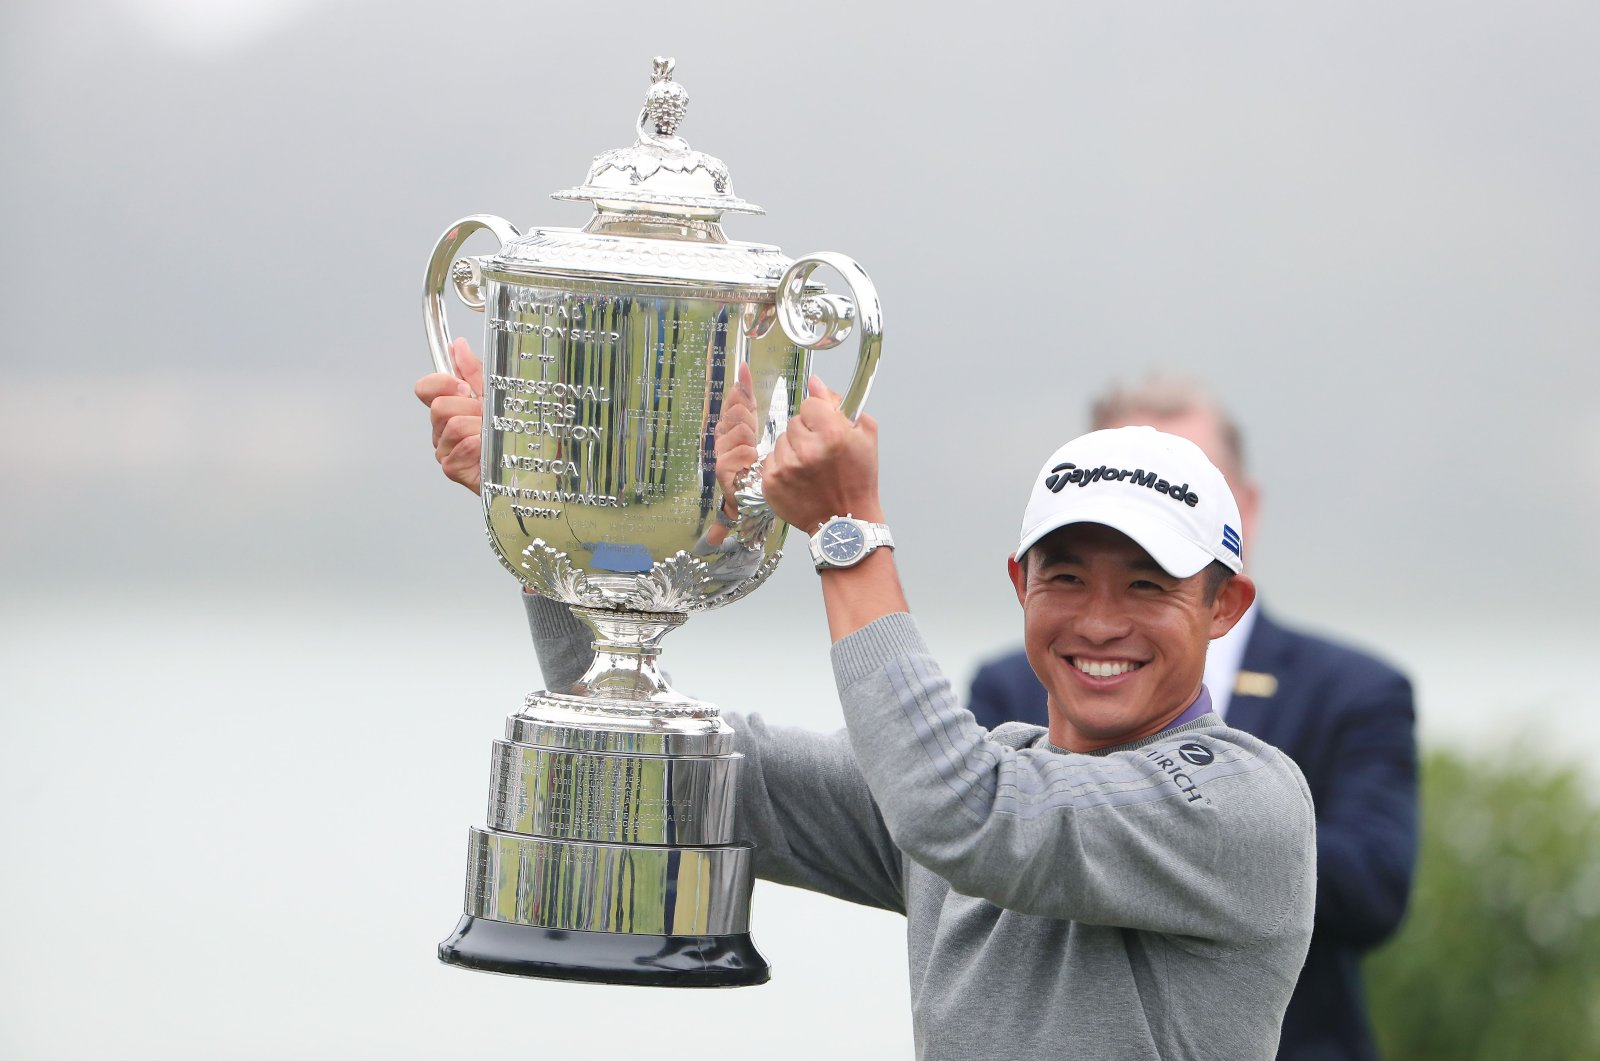 Collin Morikawa celebrates with the Wanamaker Trophy after winning during the final round of the 2020 PGA Championship in San Francisco, U.S., Aug. 9, 2020. (AFP Photo)